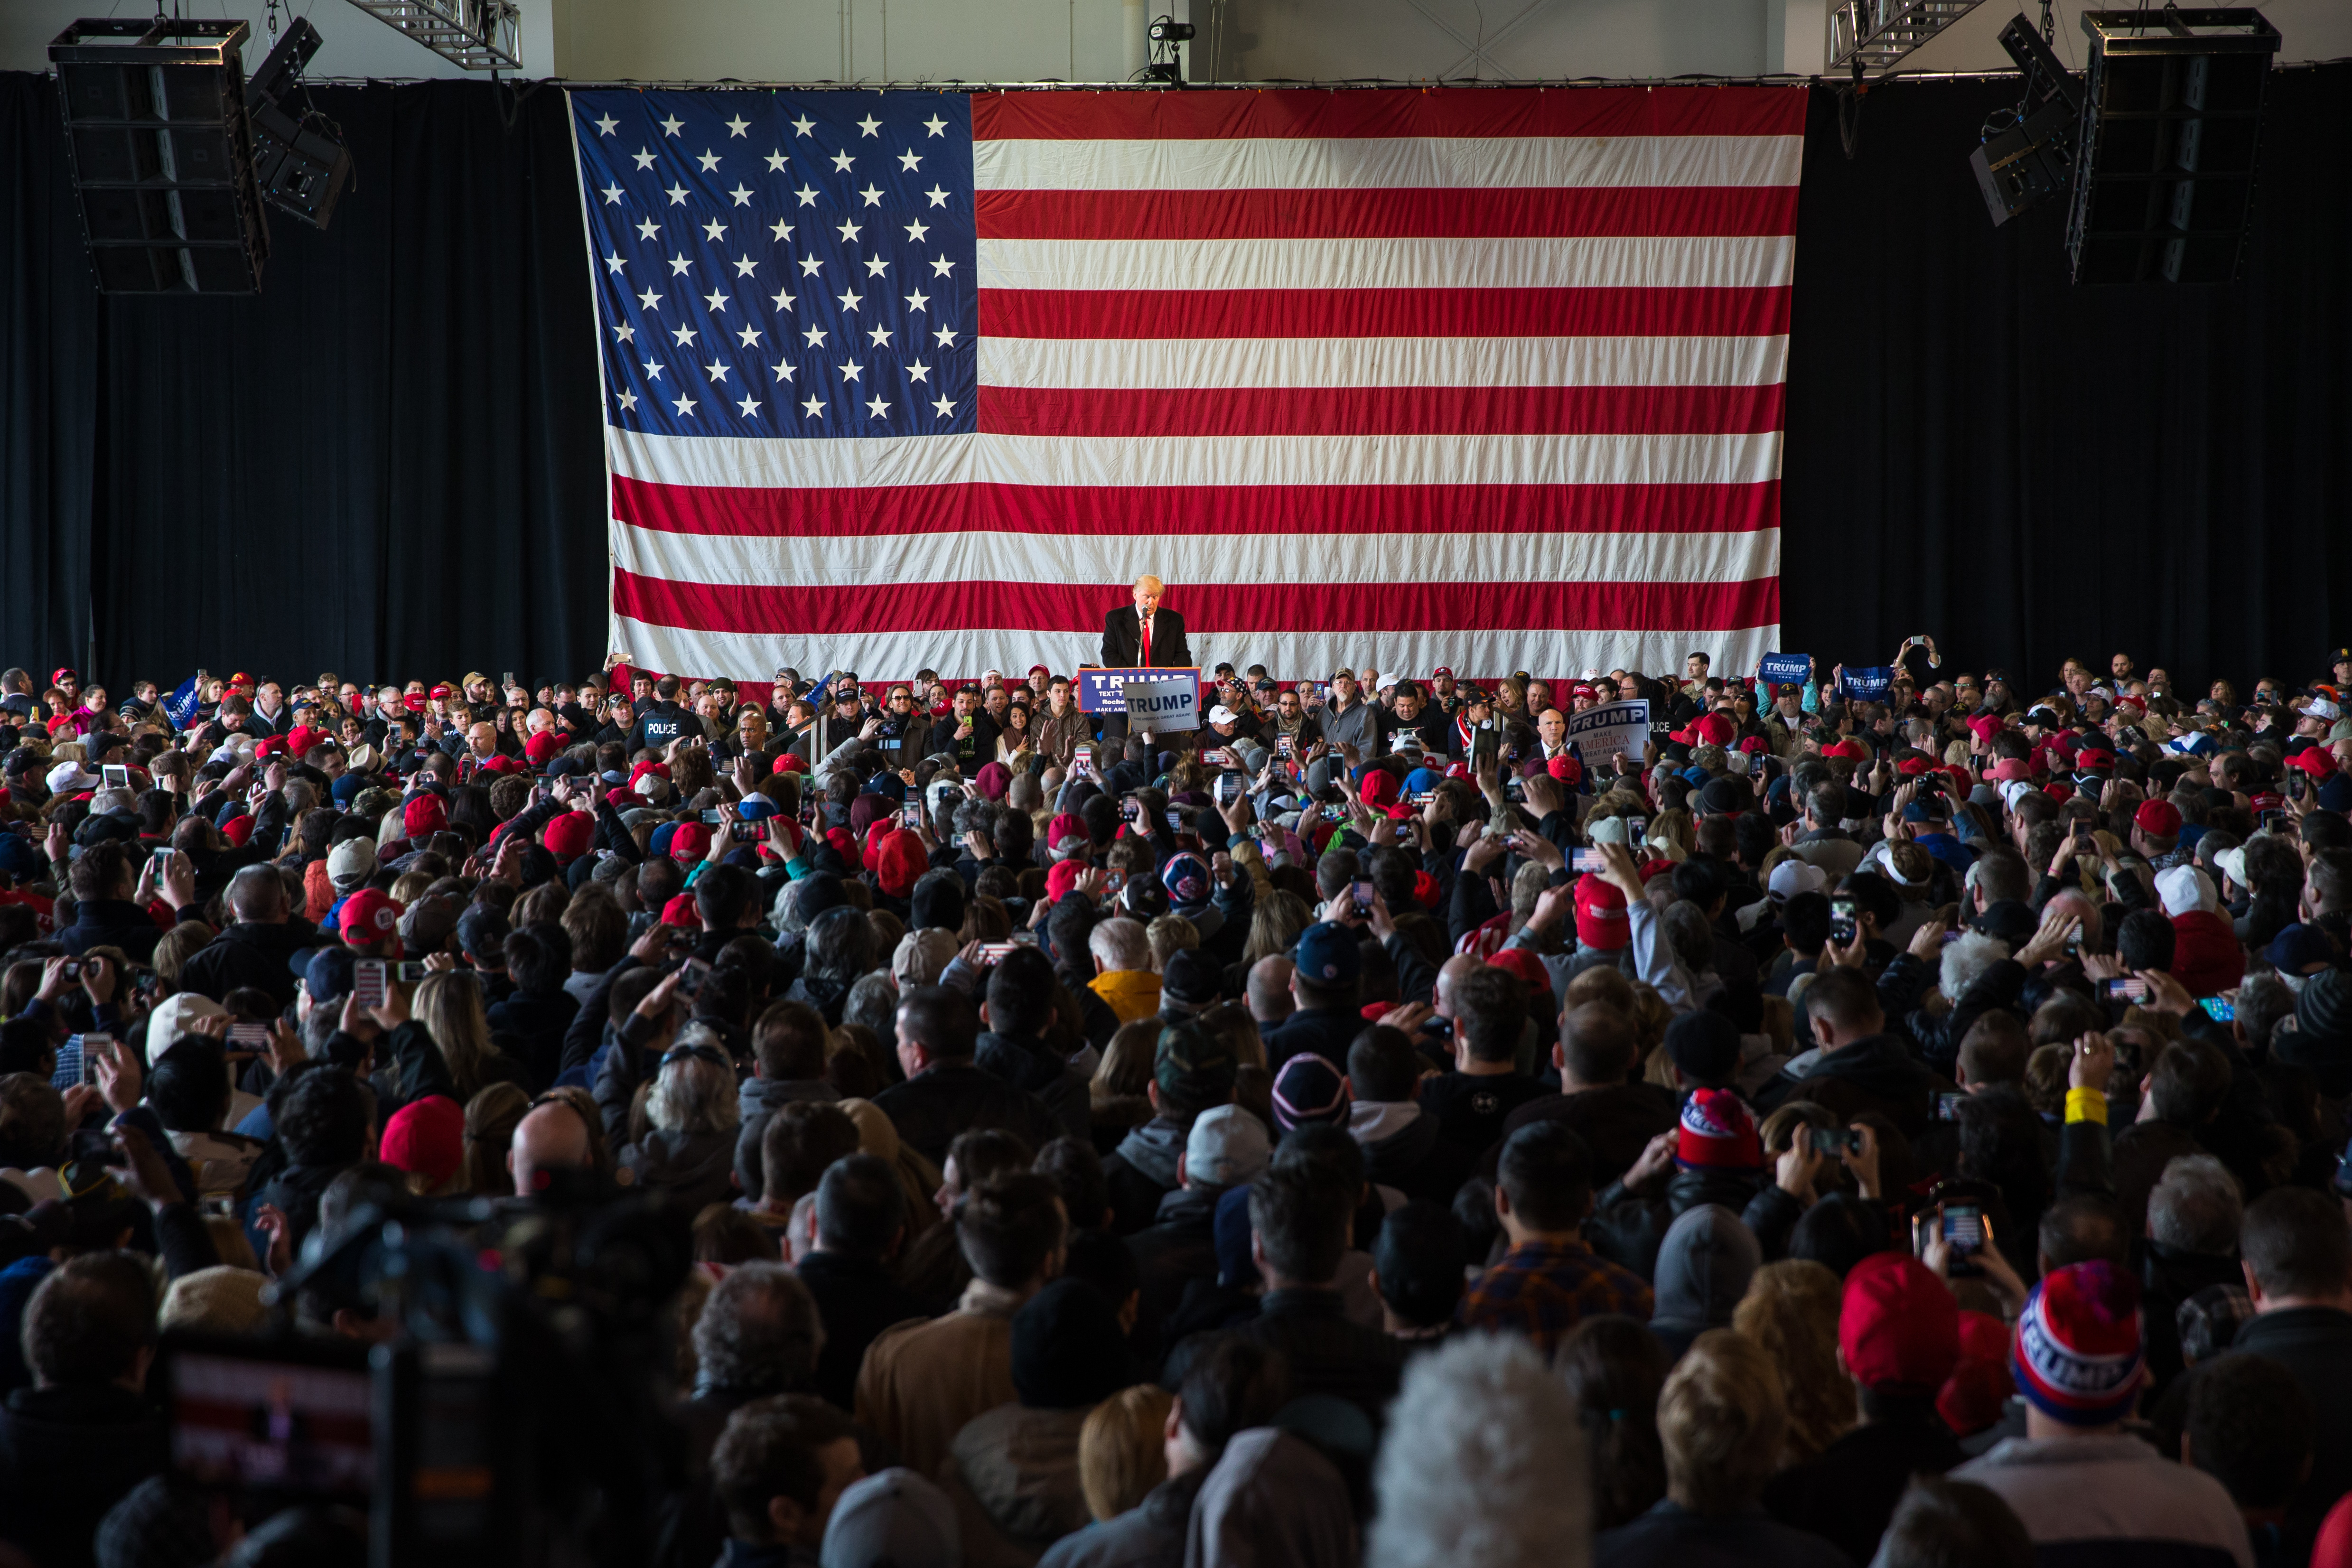 ROCHESTER, NEW YORK - APRIL 10: Republican presidential candidate Donald Trump speaks in front of a capacity crowd at a rally for his campaign on April 10, 2016 in Rochester, New York. The New York Democratic primary is scheduled for April 19th. (Photo by Brett Carlsen/Getty Images)